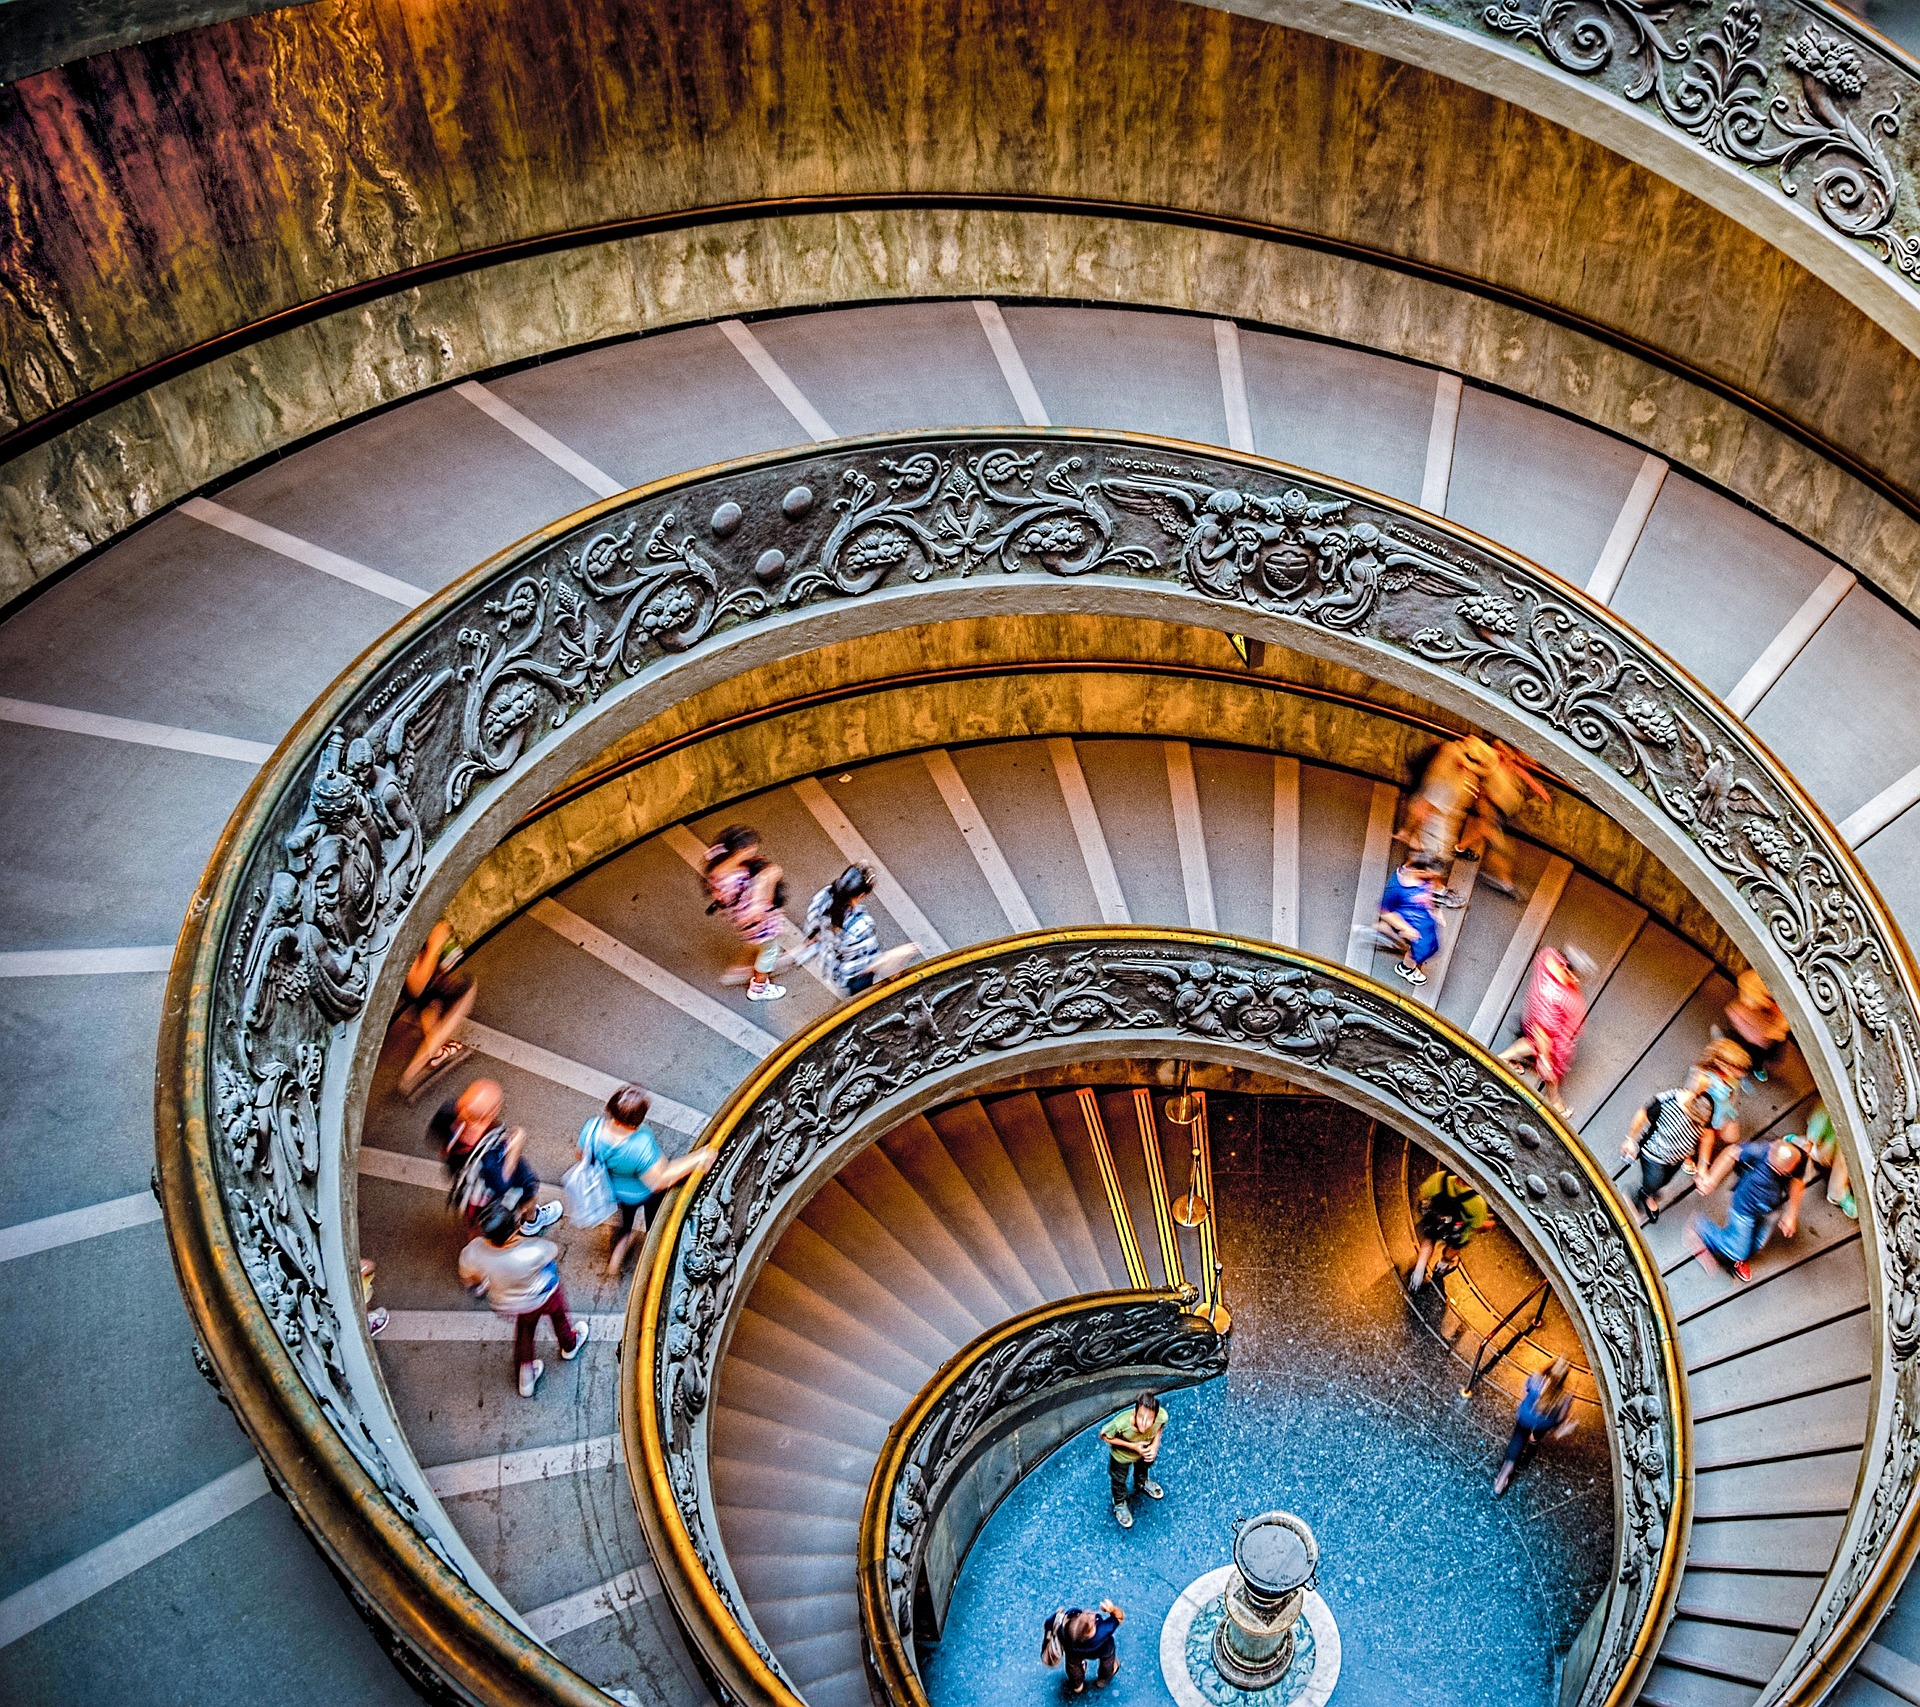 a picture of a downward swirling staircase